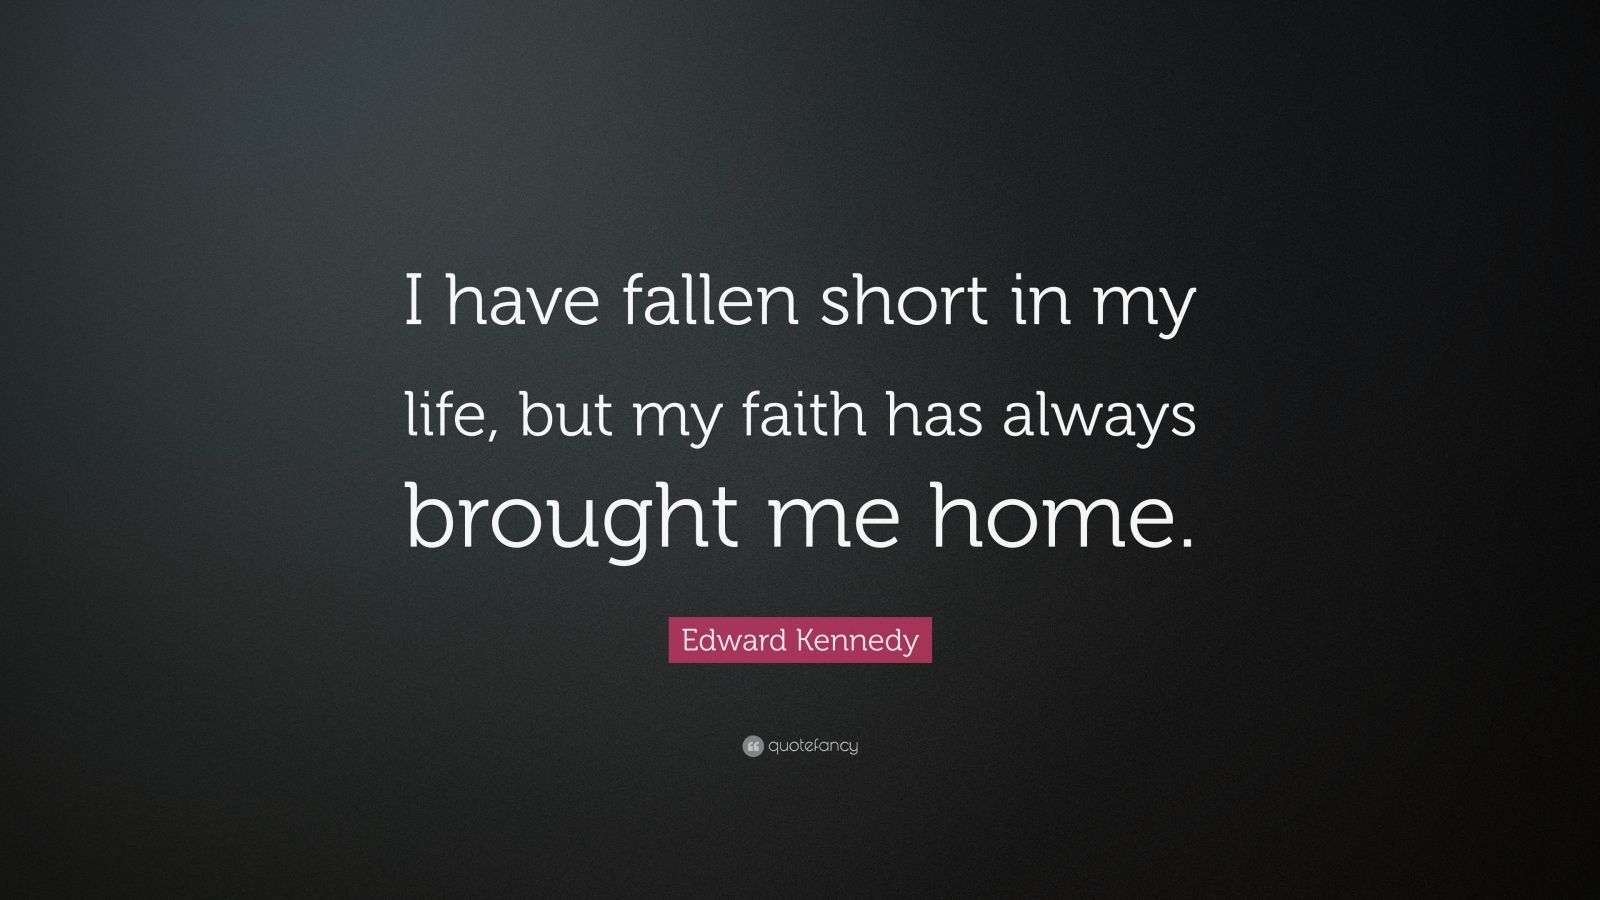 """Edward Kennedy Quote: """"I have fallen short in my life, but my faith has always brought me home."""""""